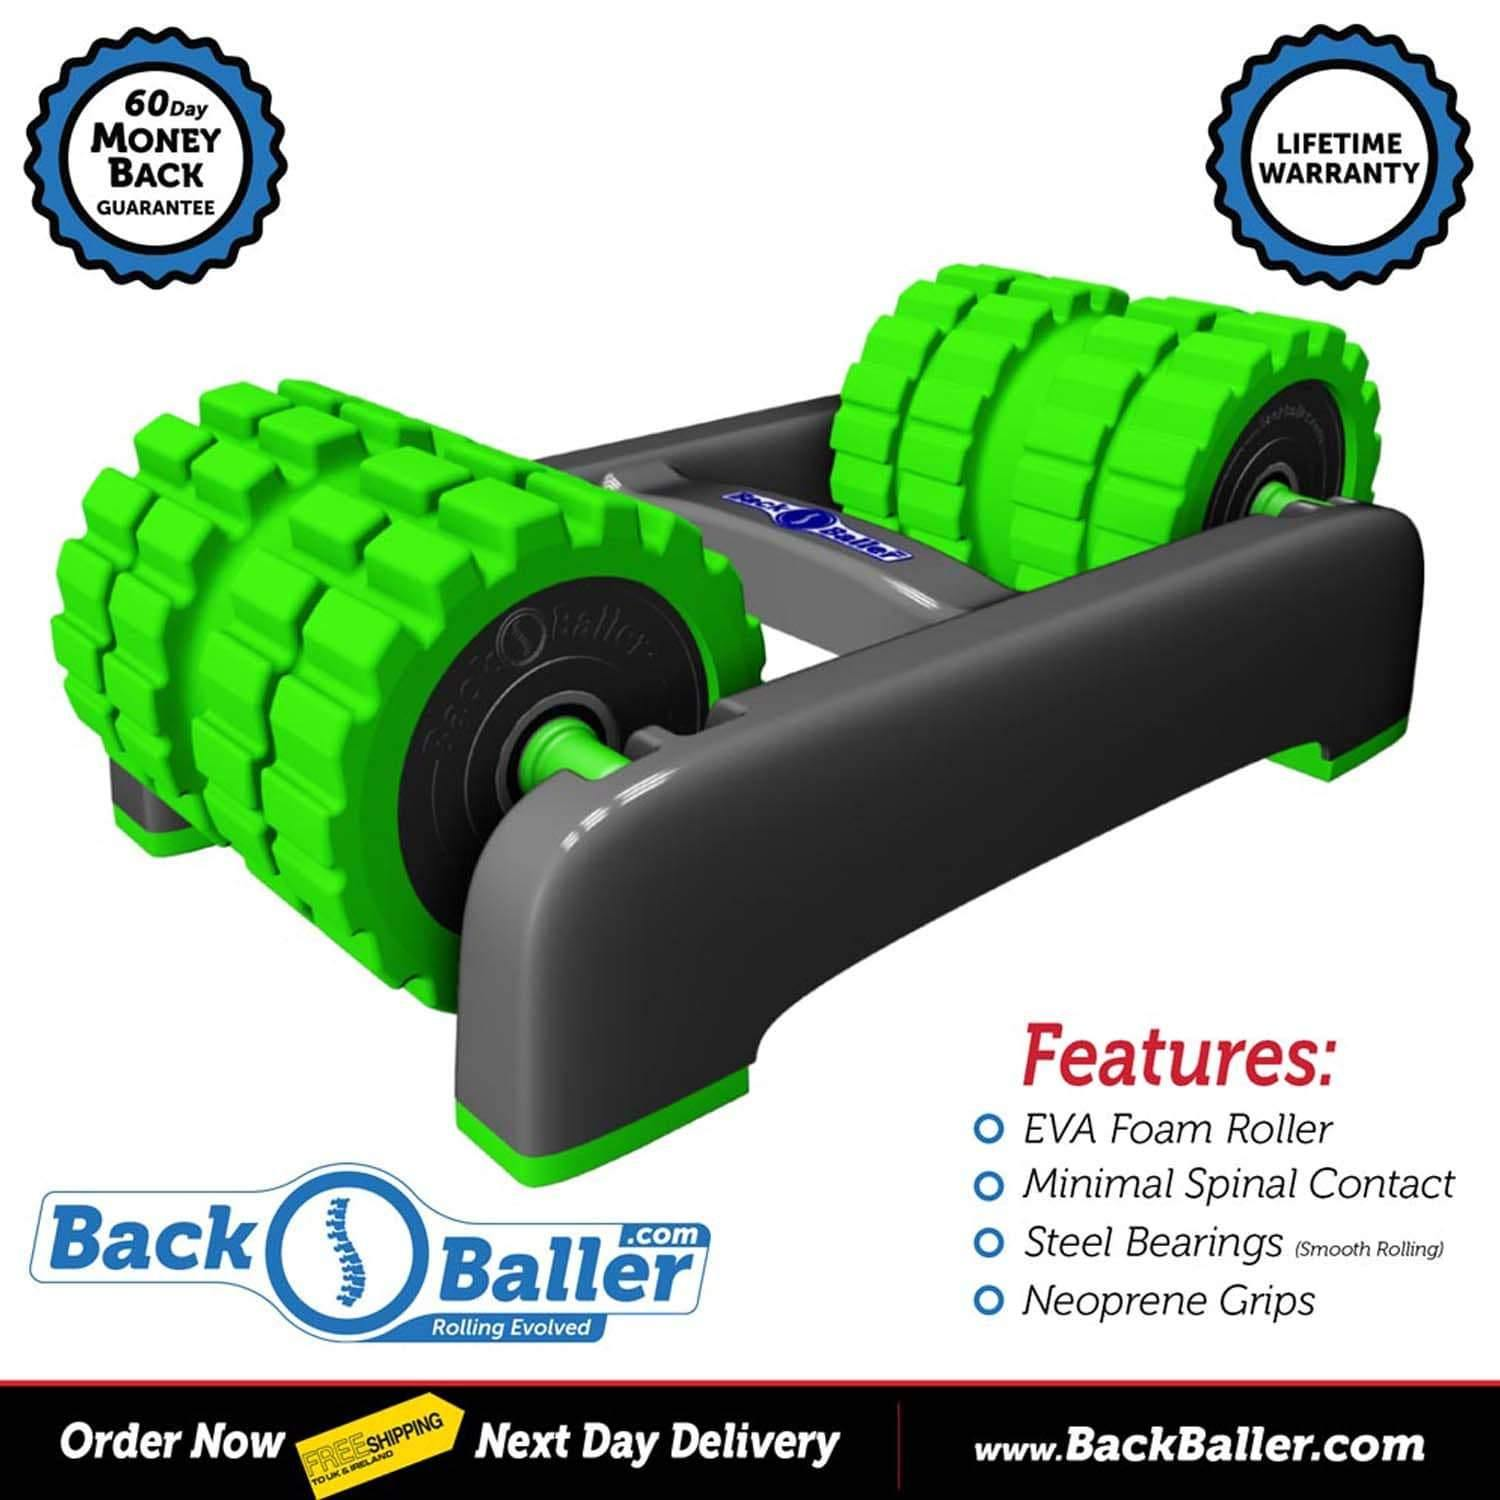 BackBaller Double Foam Roller - Bourke Sports Limited